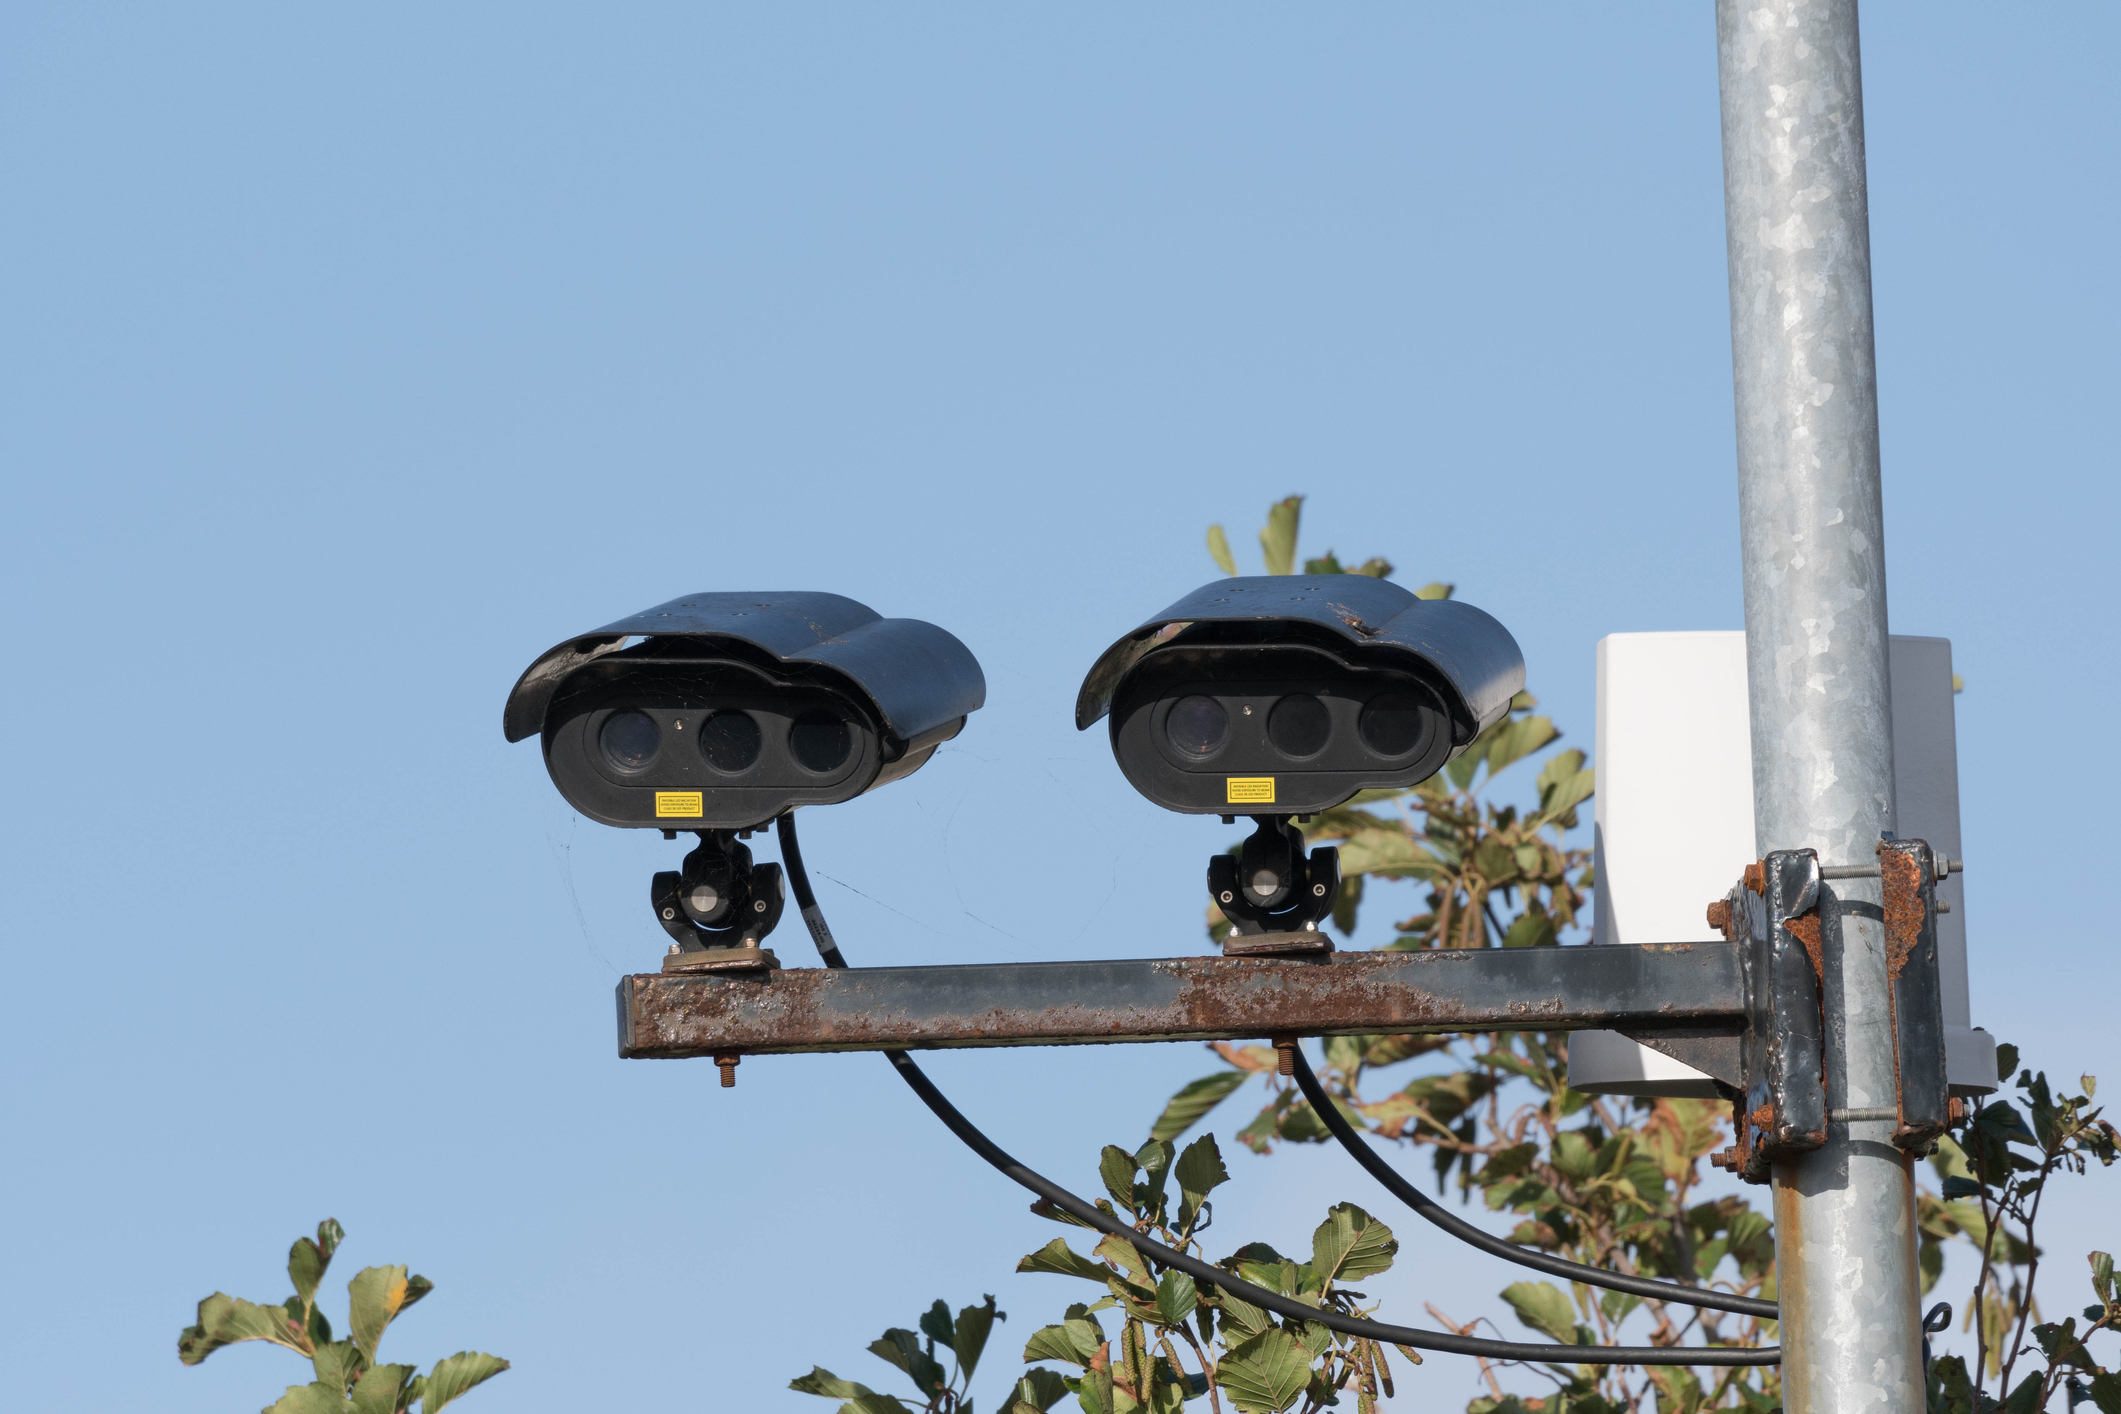 Debate over license plate readers returns to Metro Council Tuesday